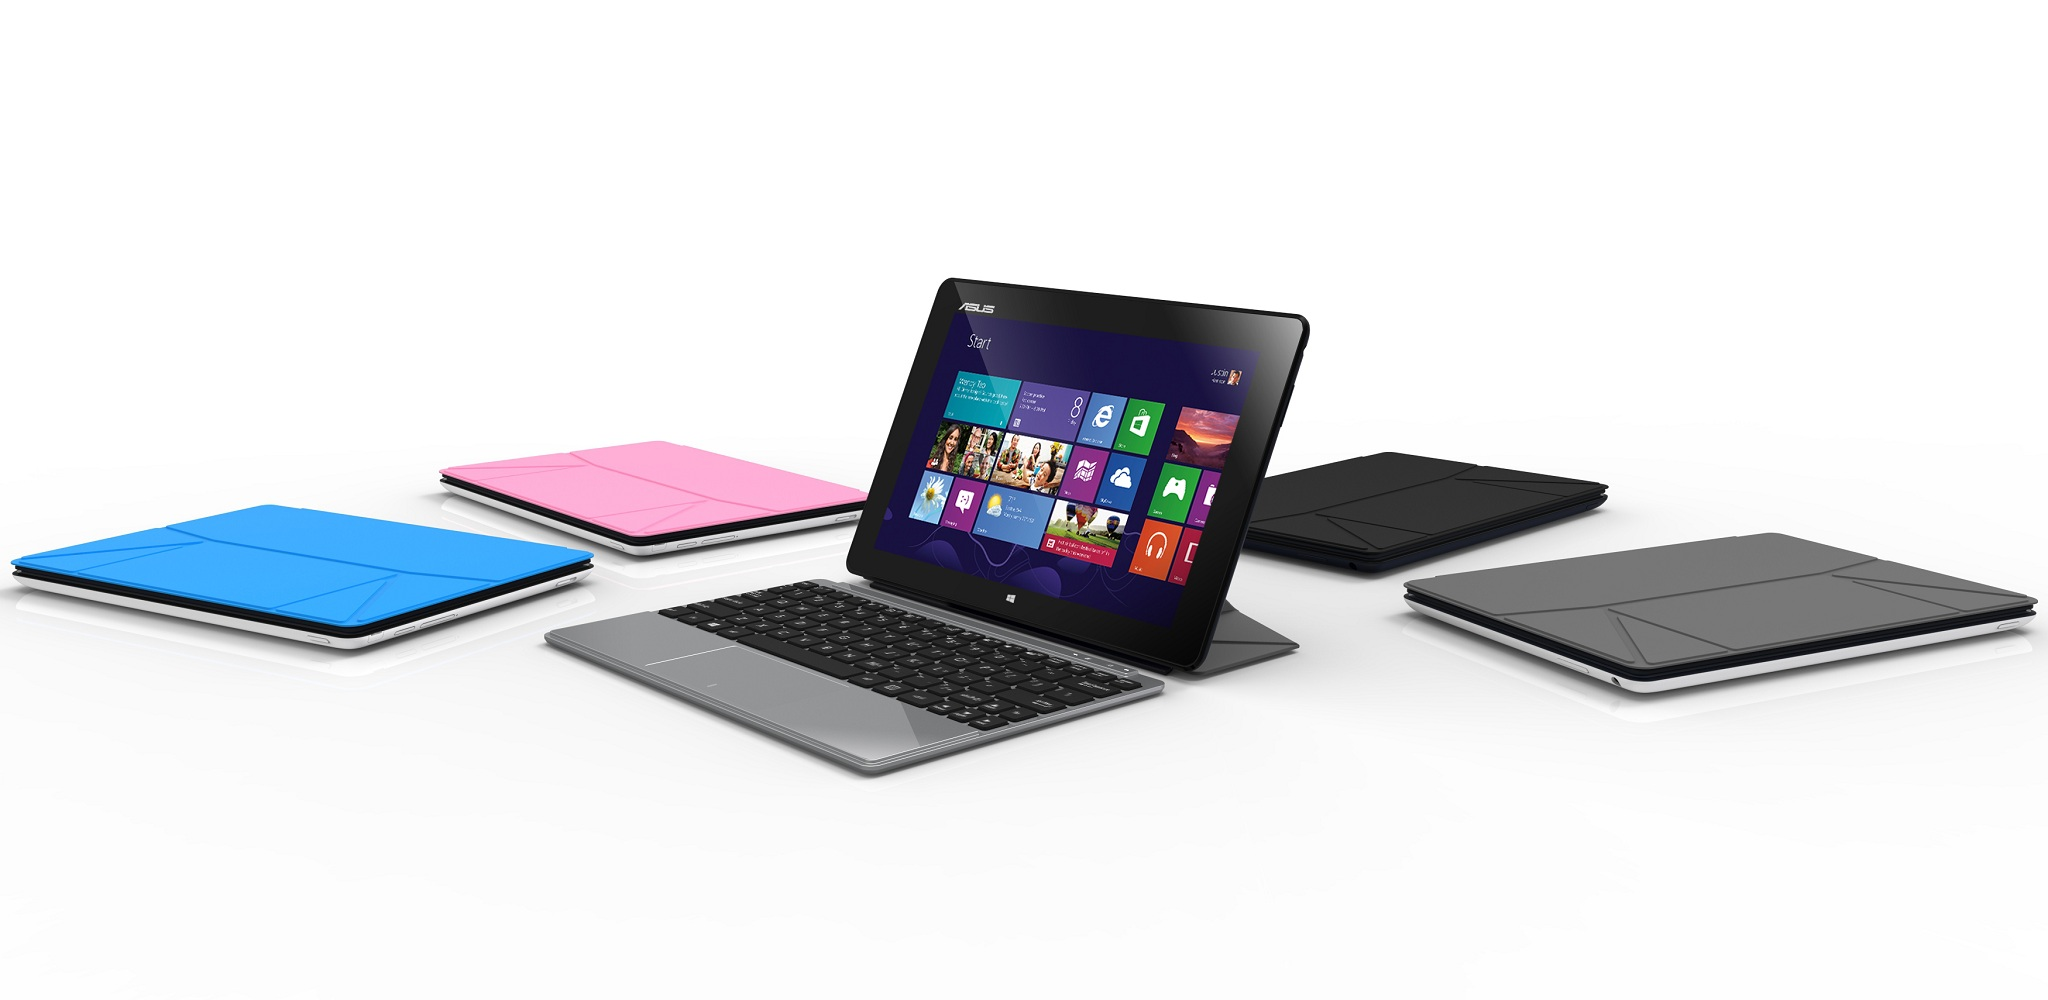 ASUS VivoTab Smart with Sleeves and Bluetooth keyboarda - Asus VivoTab Smart, une tablette Windows 8 avec clavier